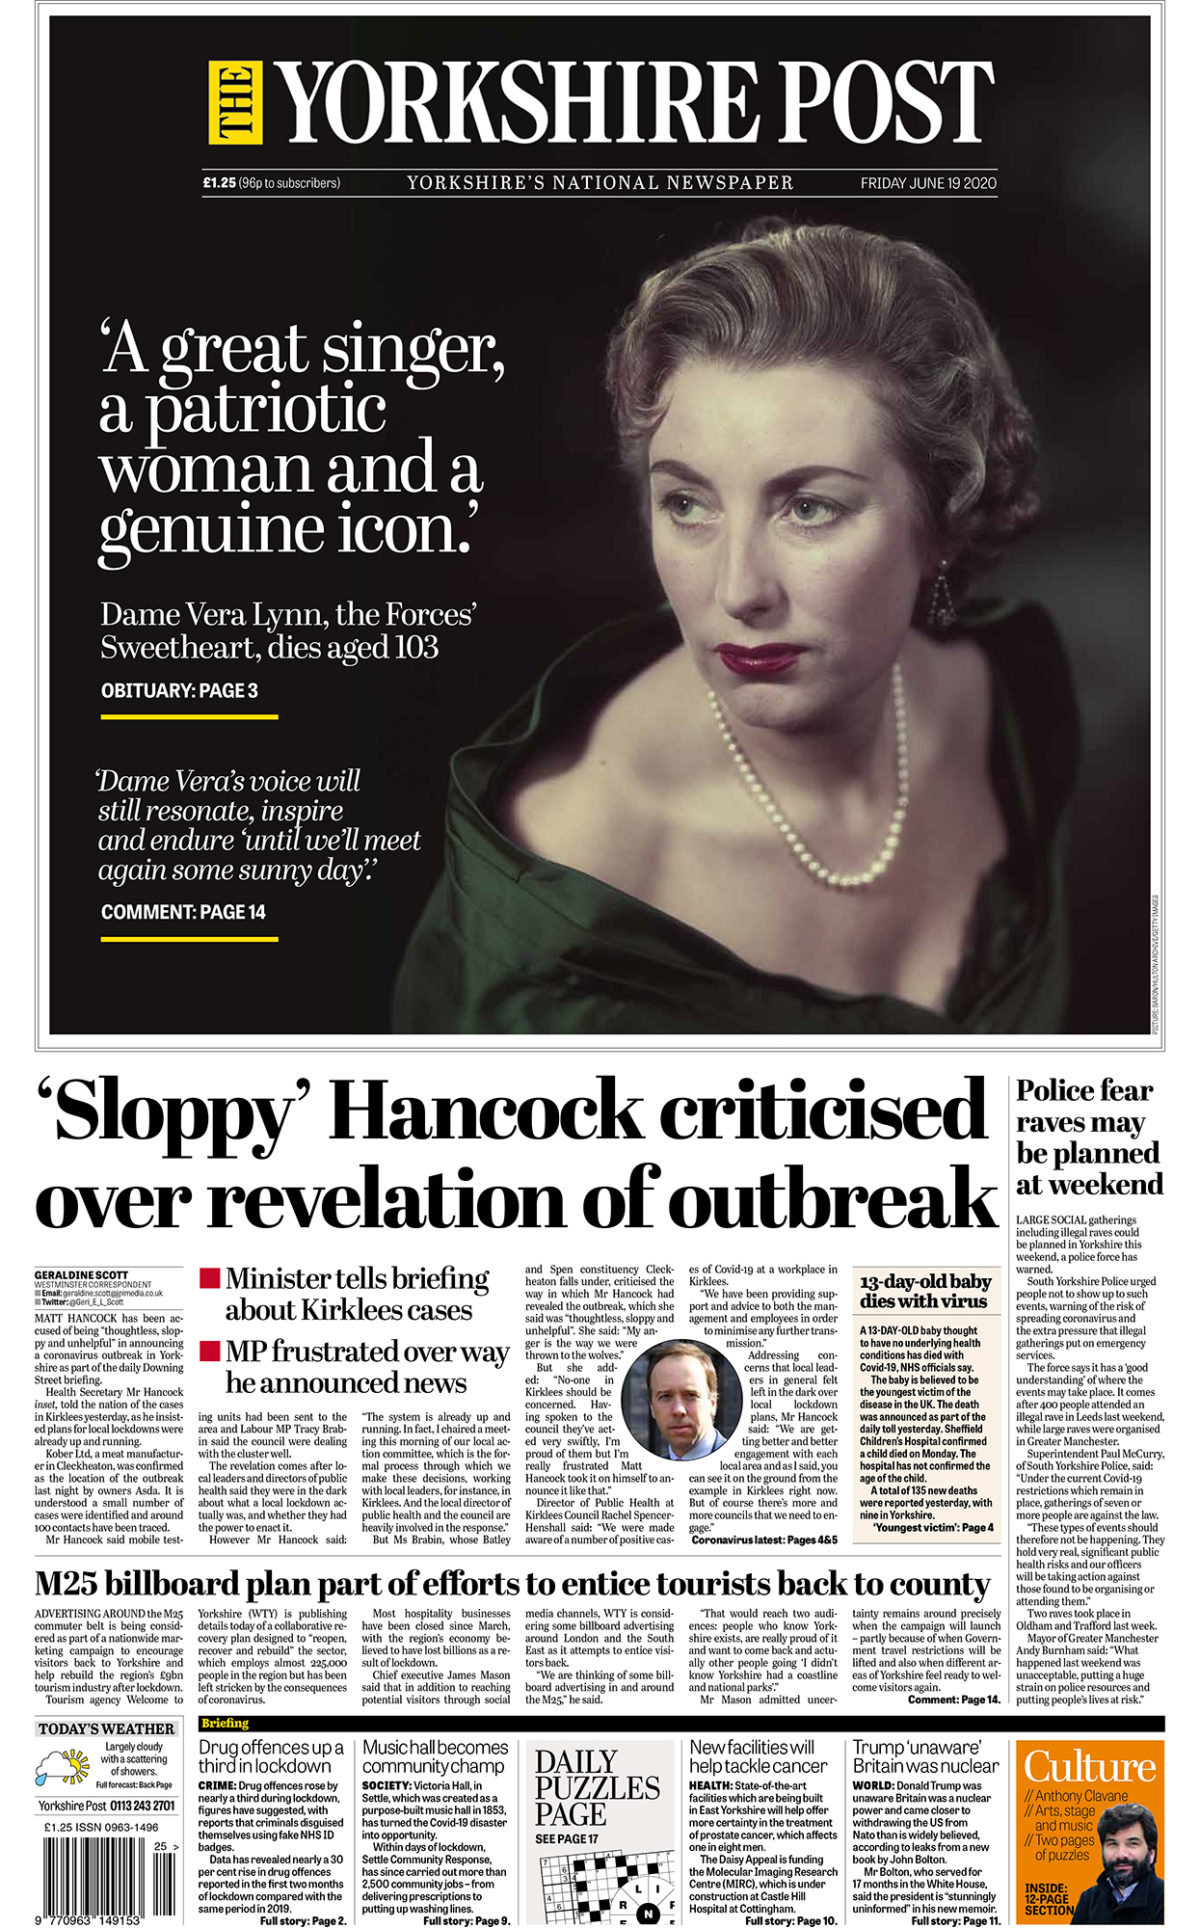 Yorkshire Post and Western Mail among winners at Regional Press Awards for 2019